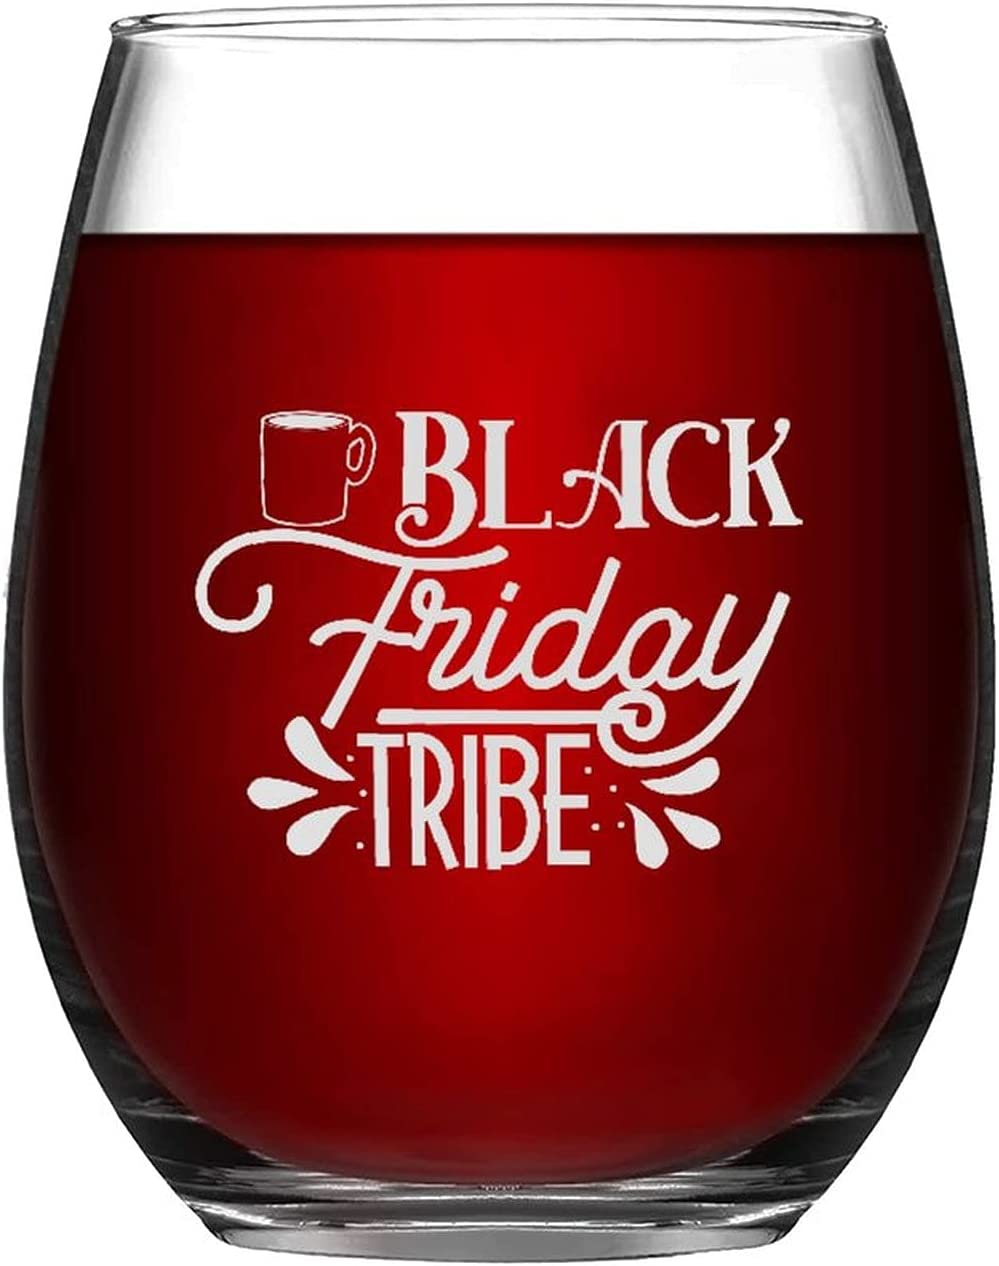 Stemless Max 61% OFF Wine Glasses Friday Tribe OFFicial site T Laser Autumn Engraved Glass